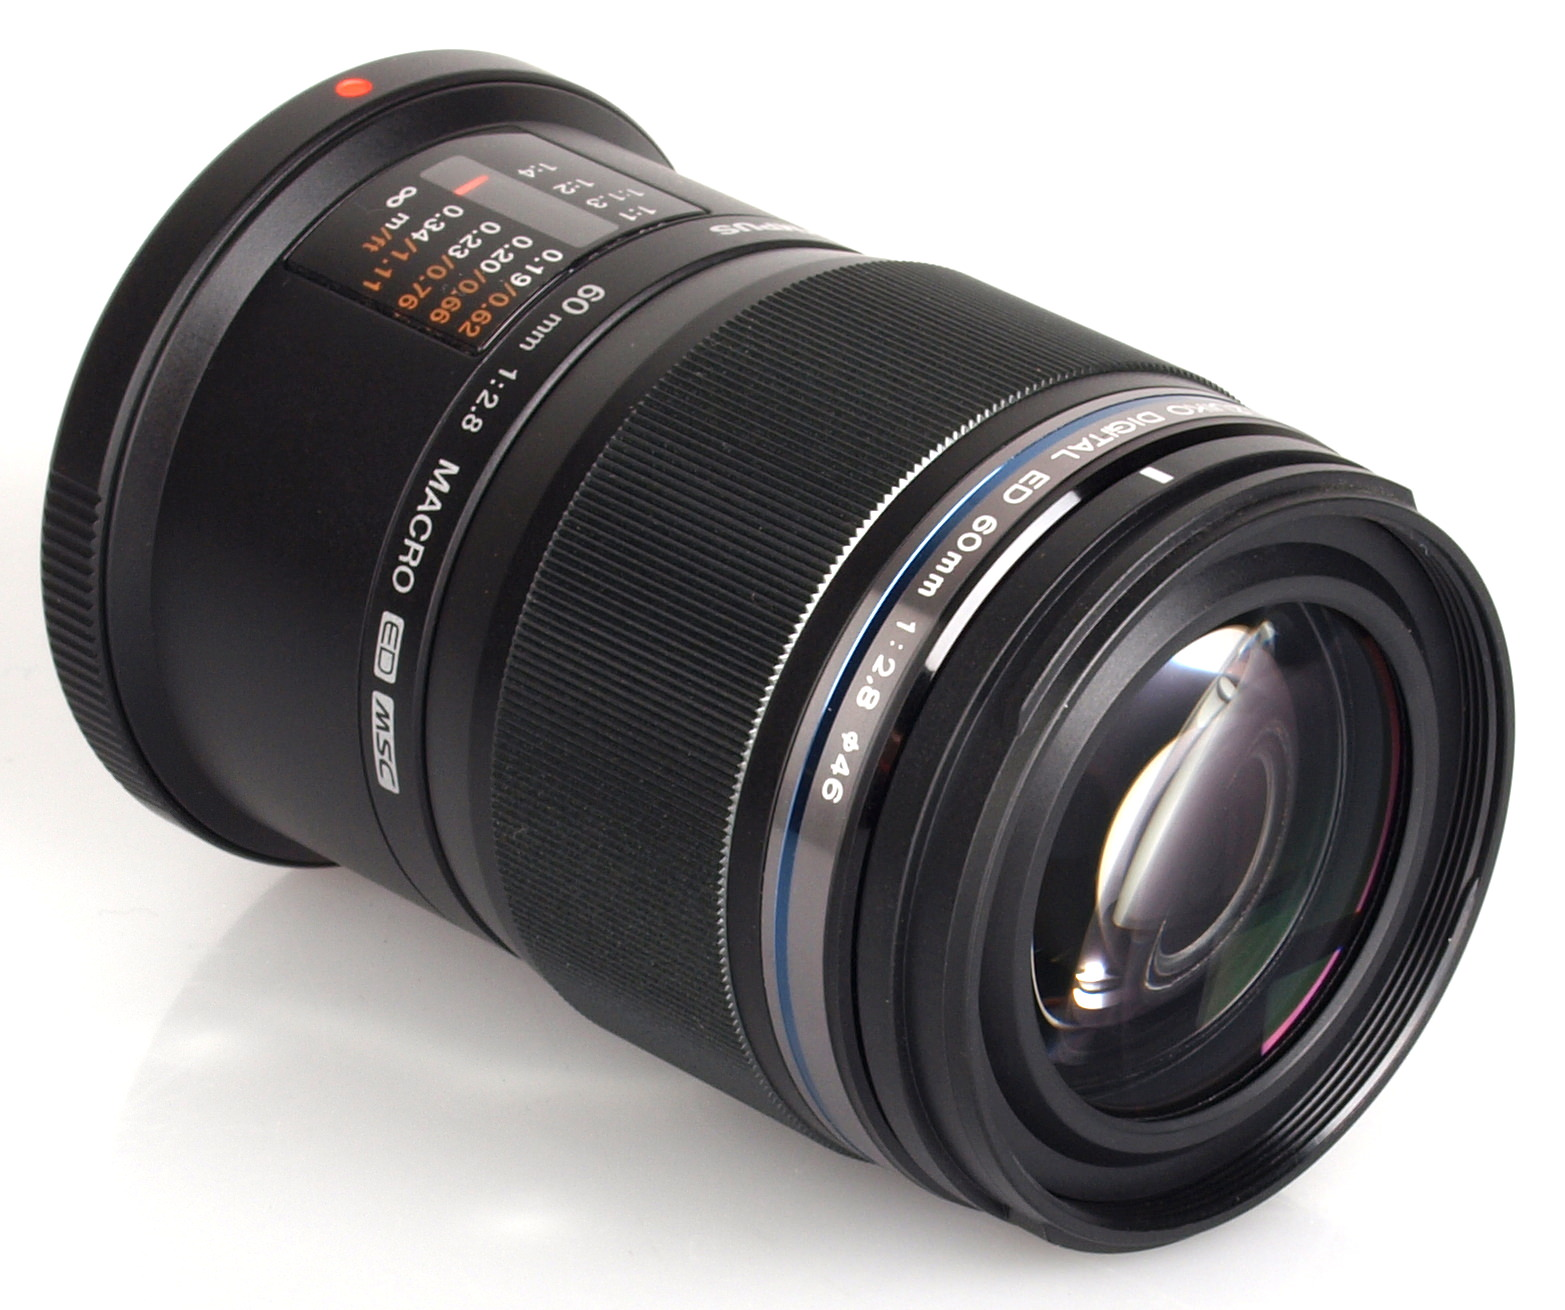 Sony 30mm f/3.5 Macro Lens for Alpha NEX Cameras SEL30M35 B&H